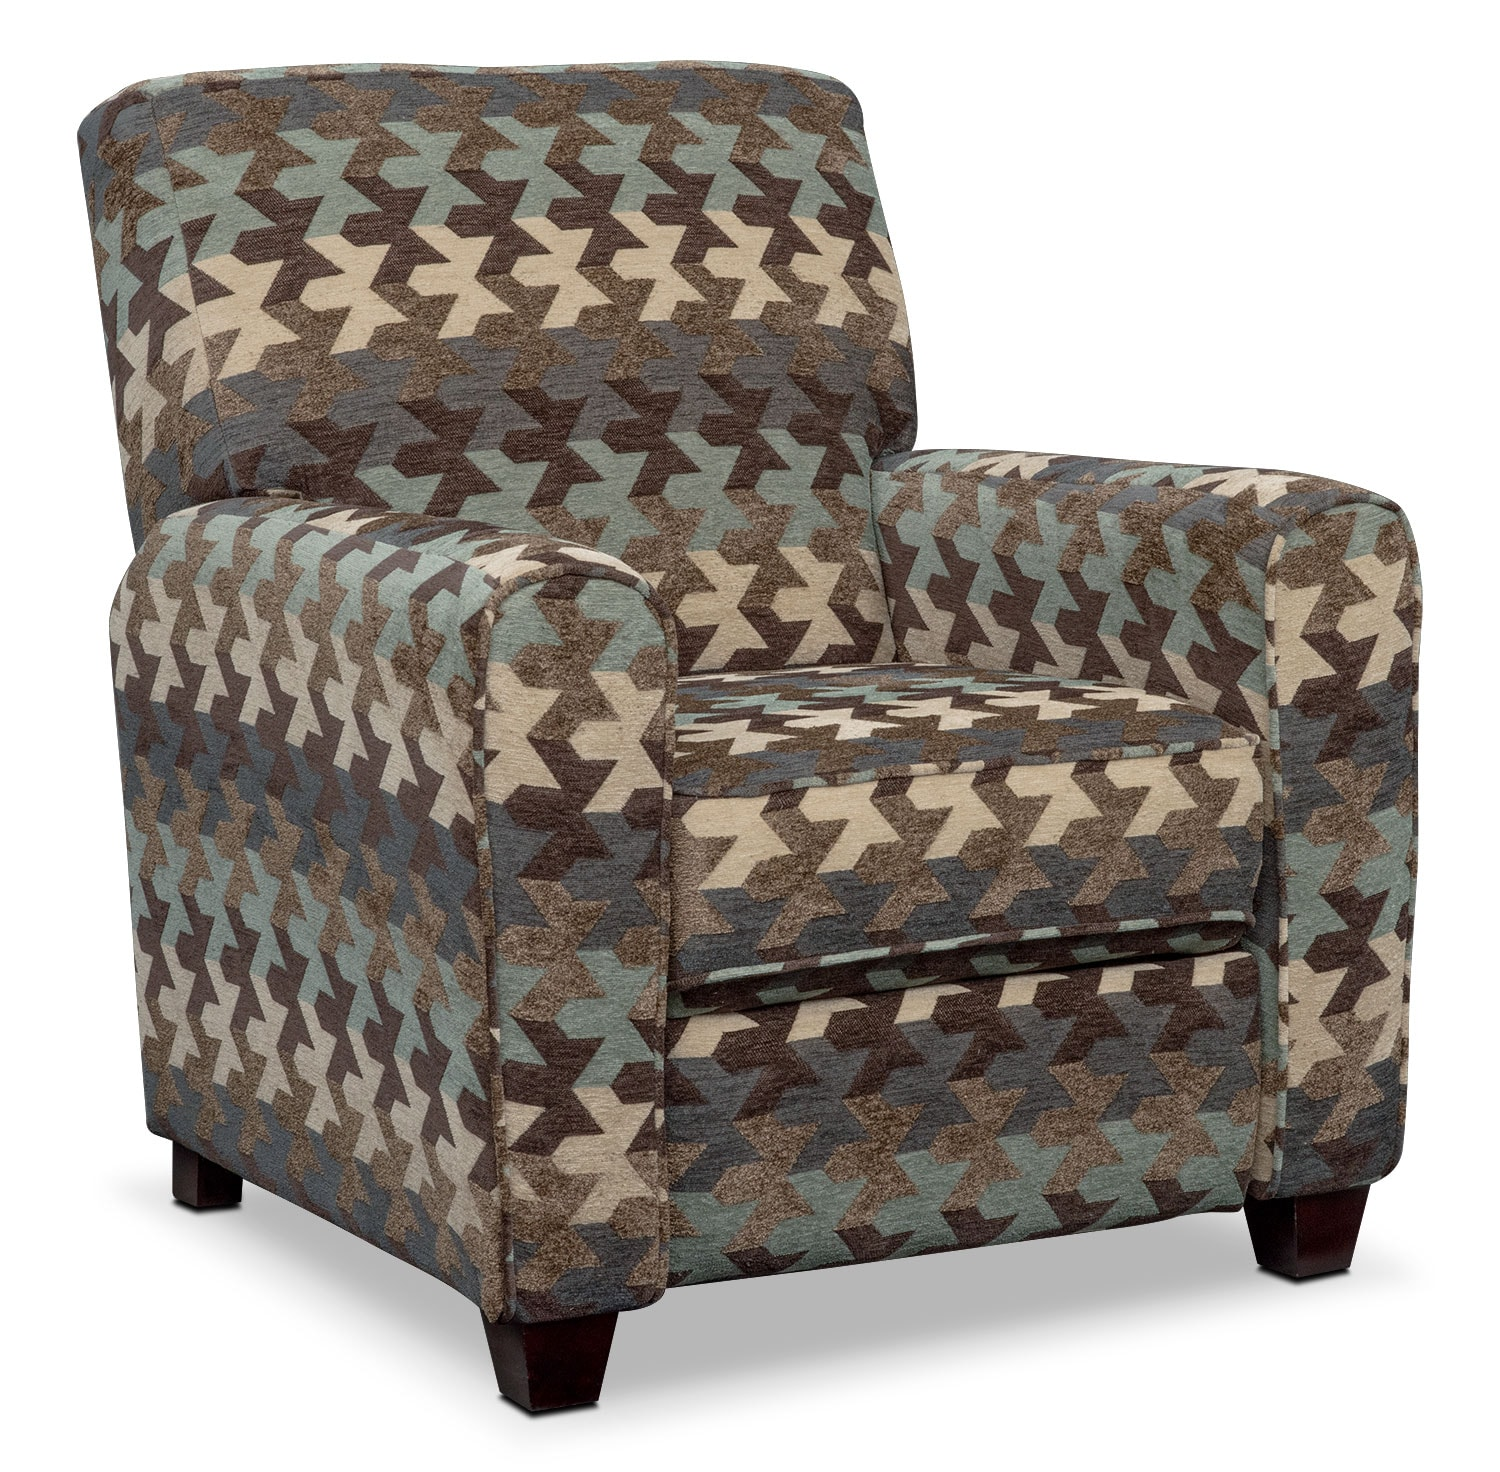 Living Room Furniture - Juno Push-Back Recliner - Chocolate